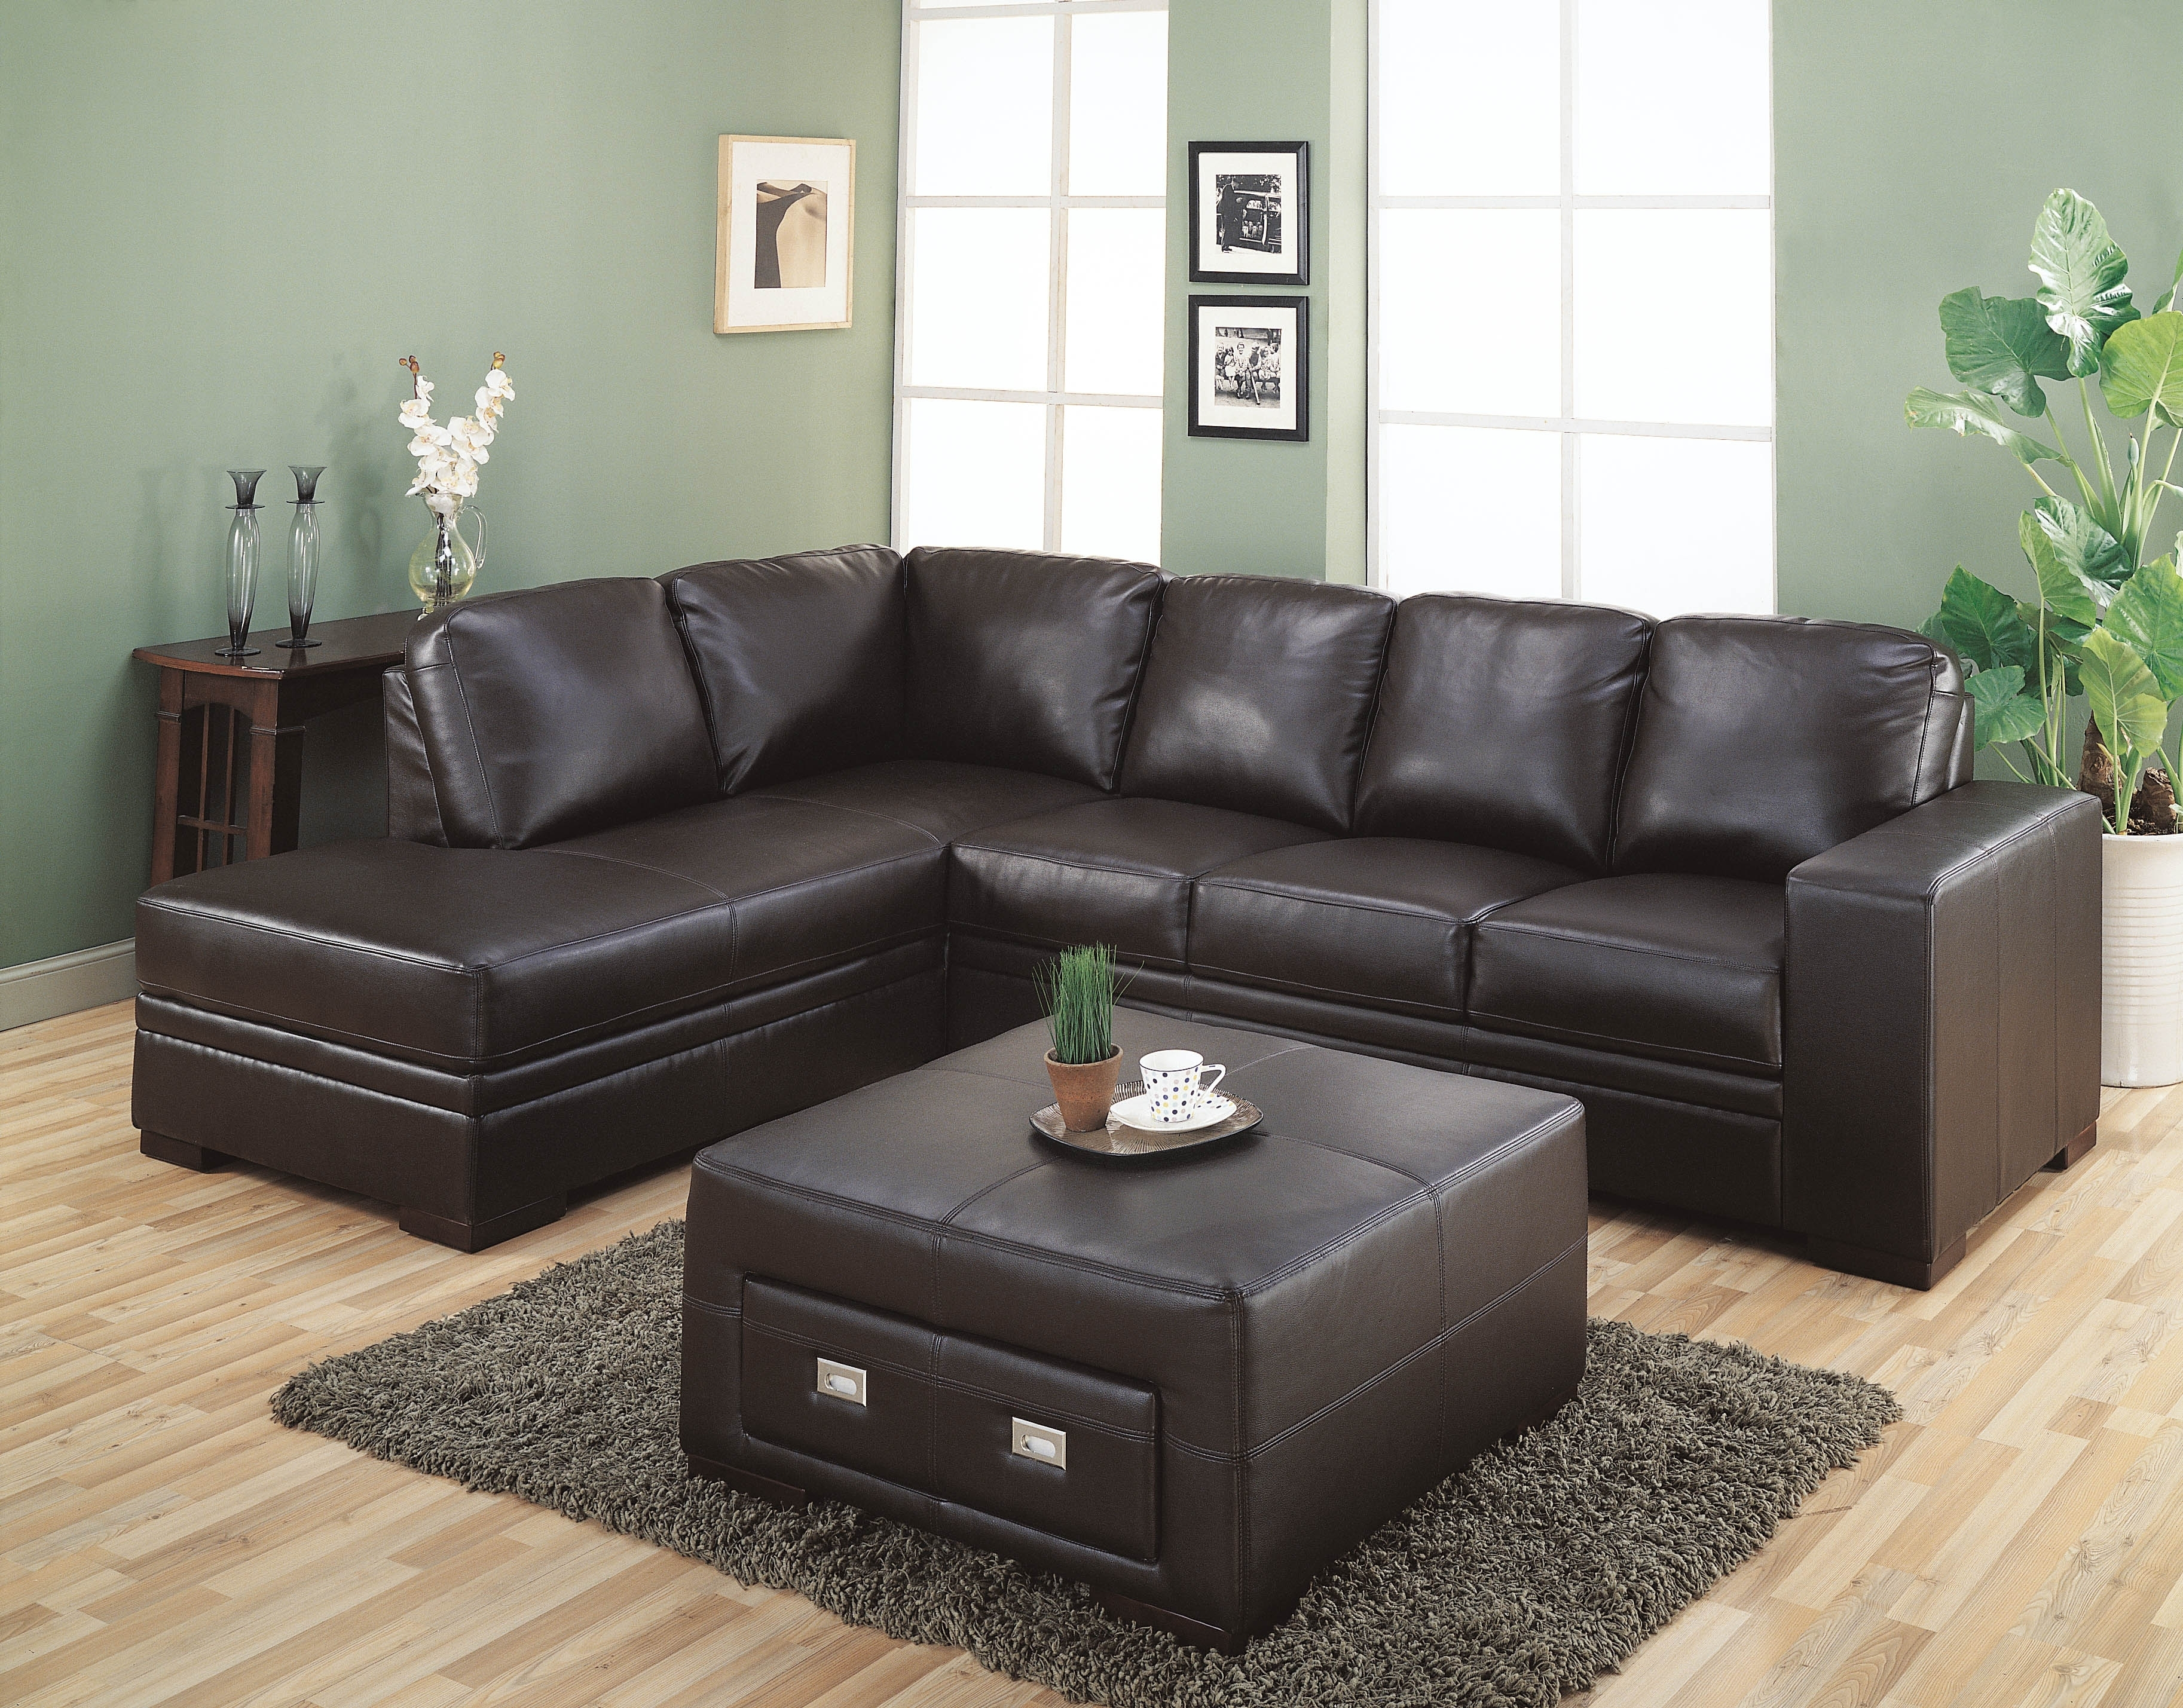 Sofa Leather Sectional Sofas Collection Of Brown Black Couch For Within Memphis Sectional Sofas (View 6 of 10)